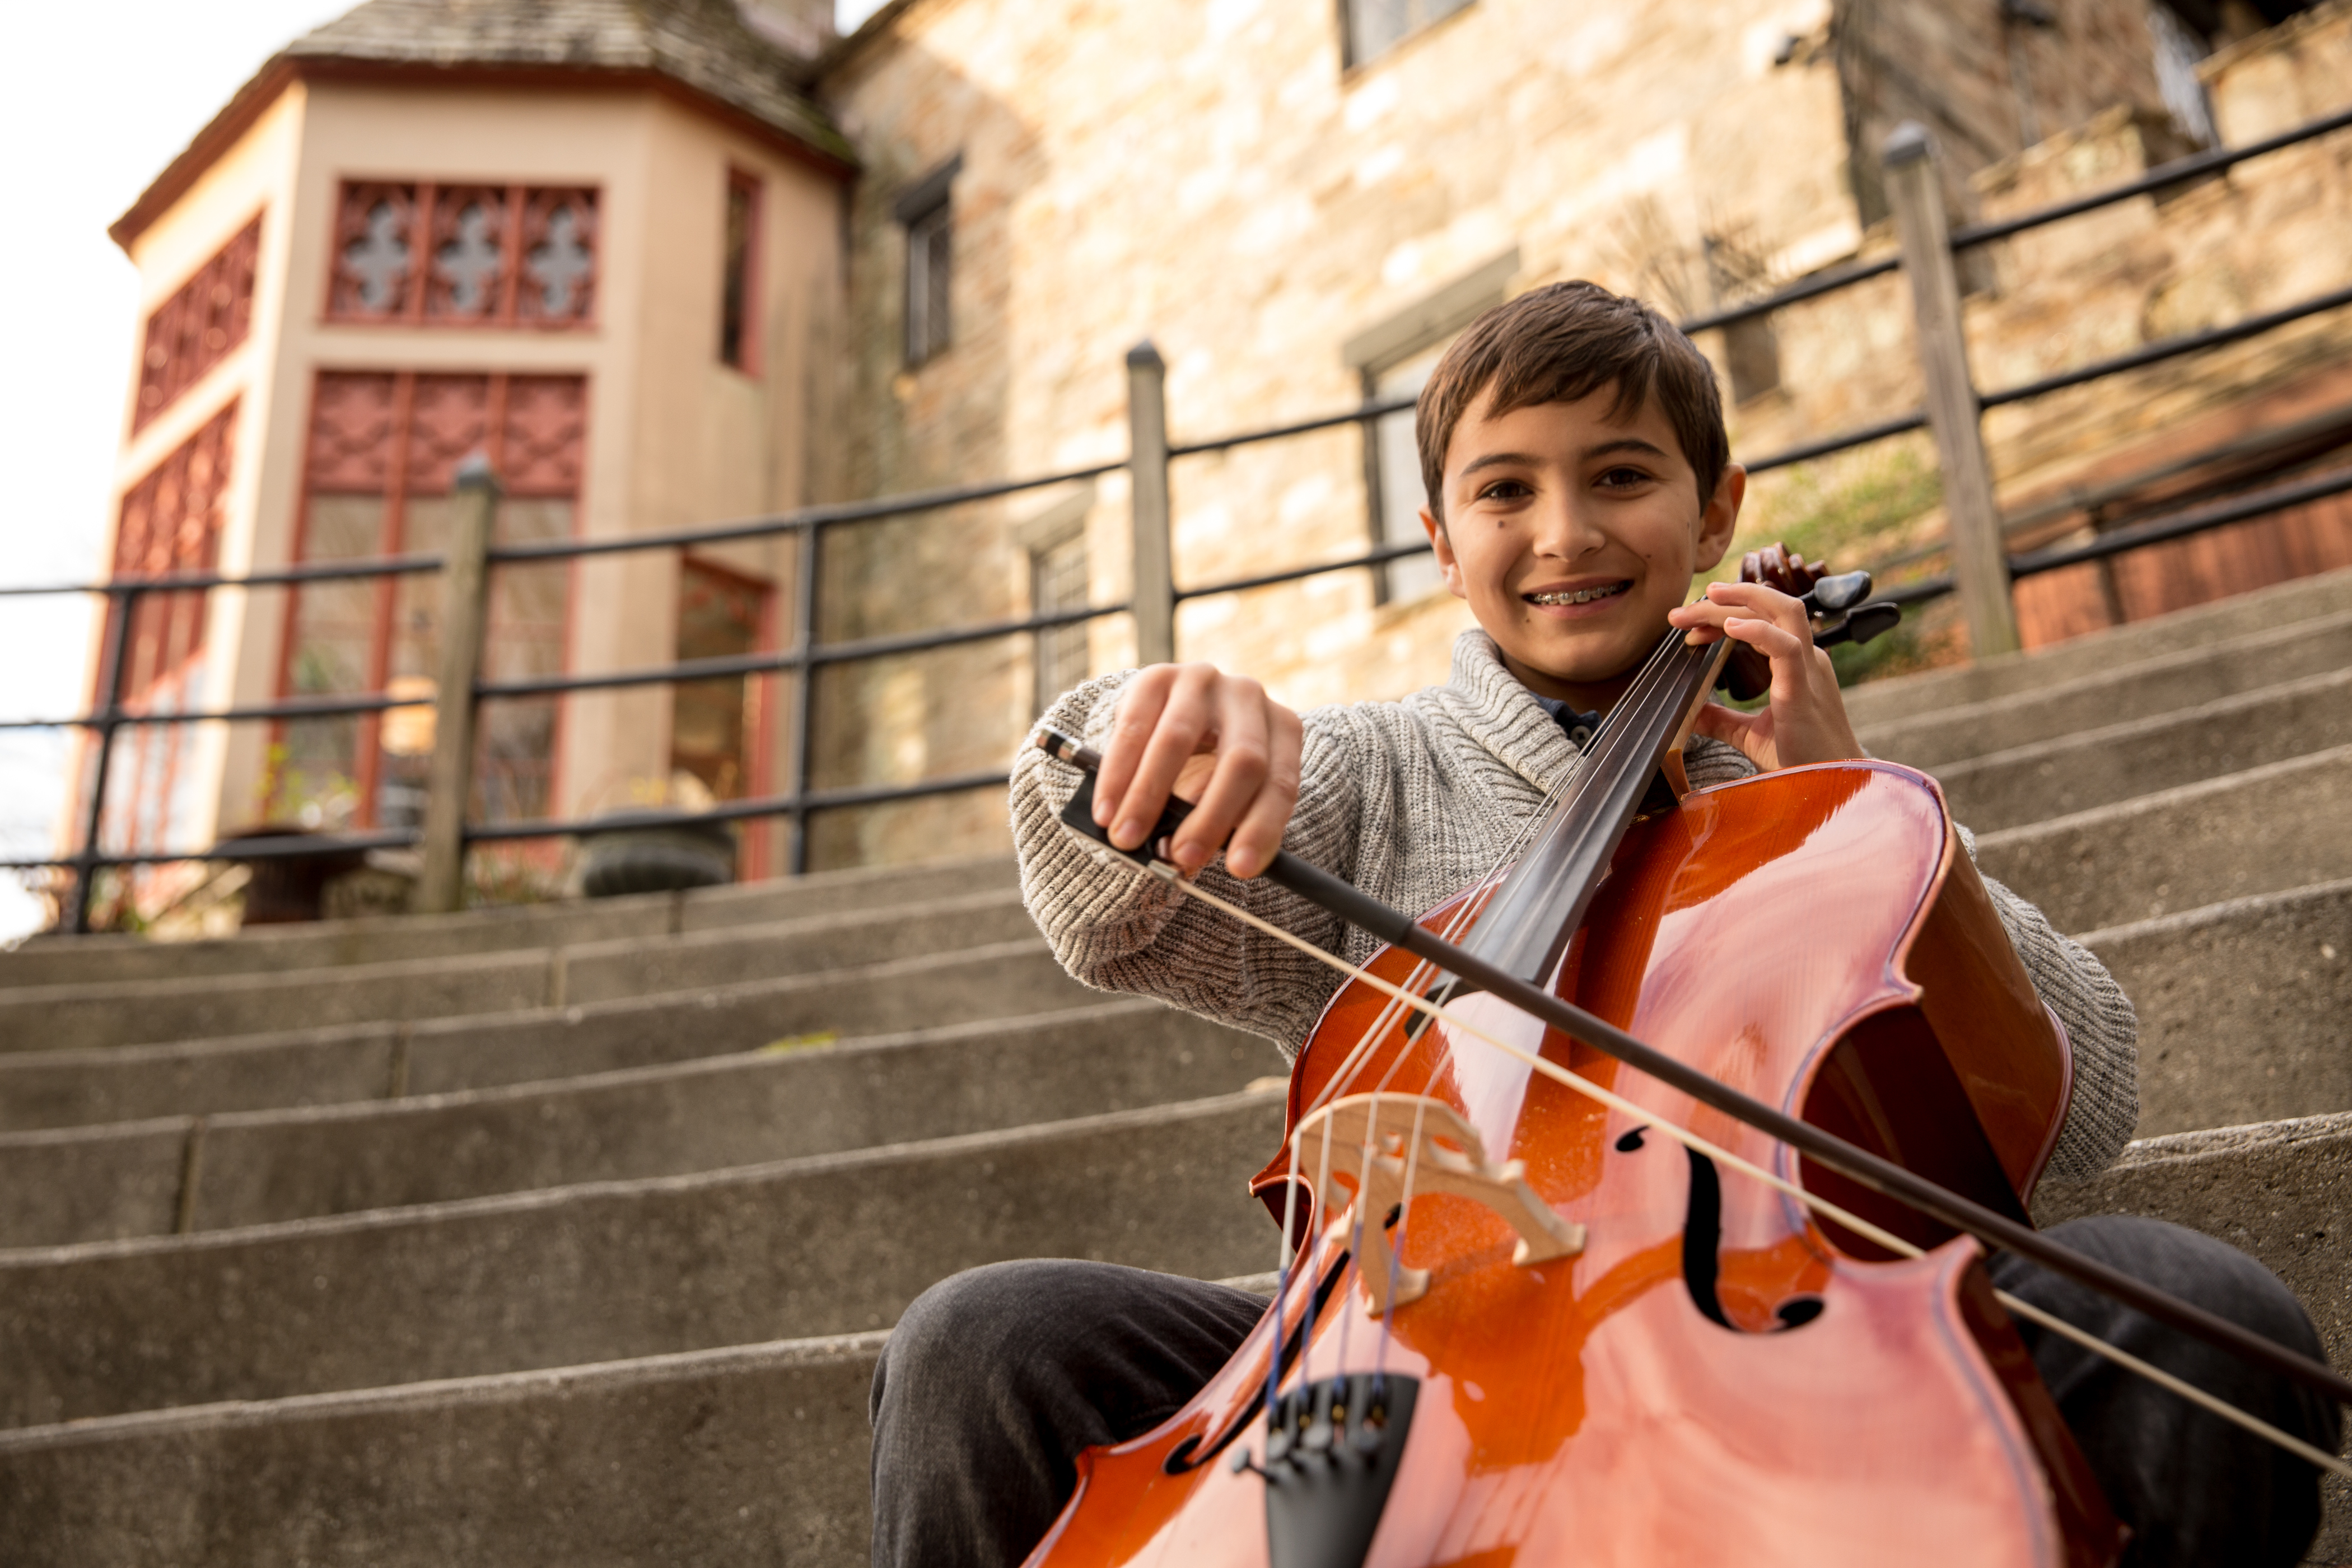 Tips and Advice for Cello Players